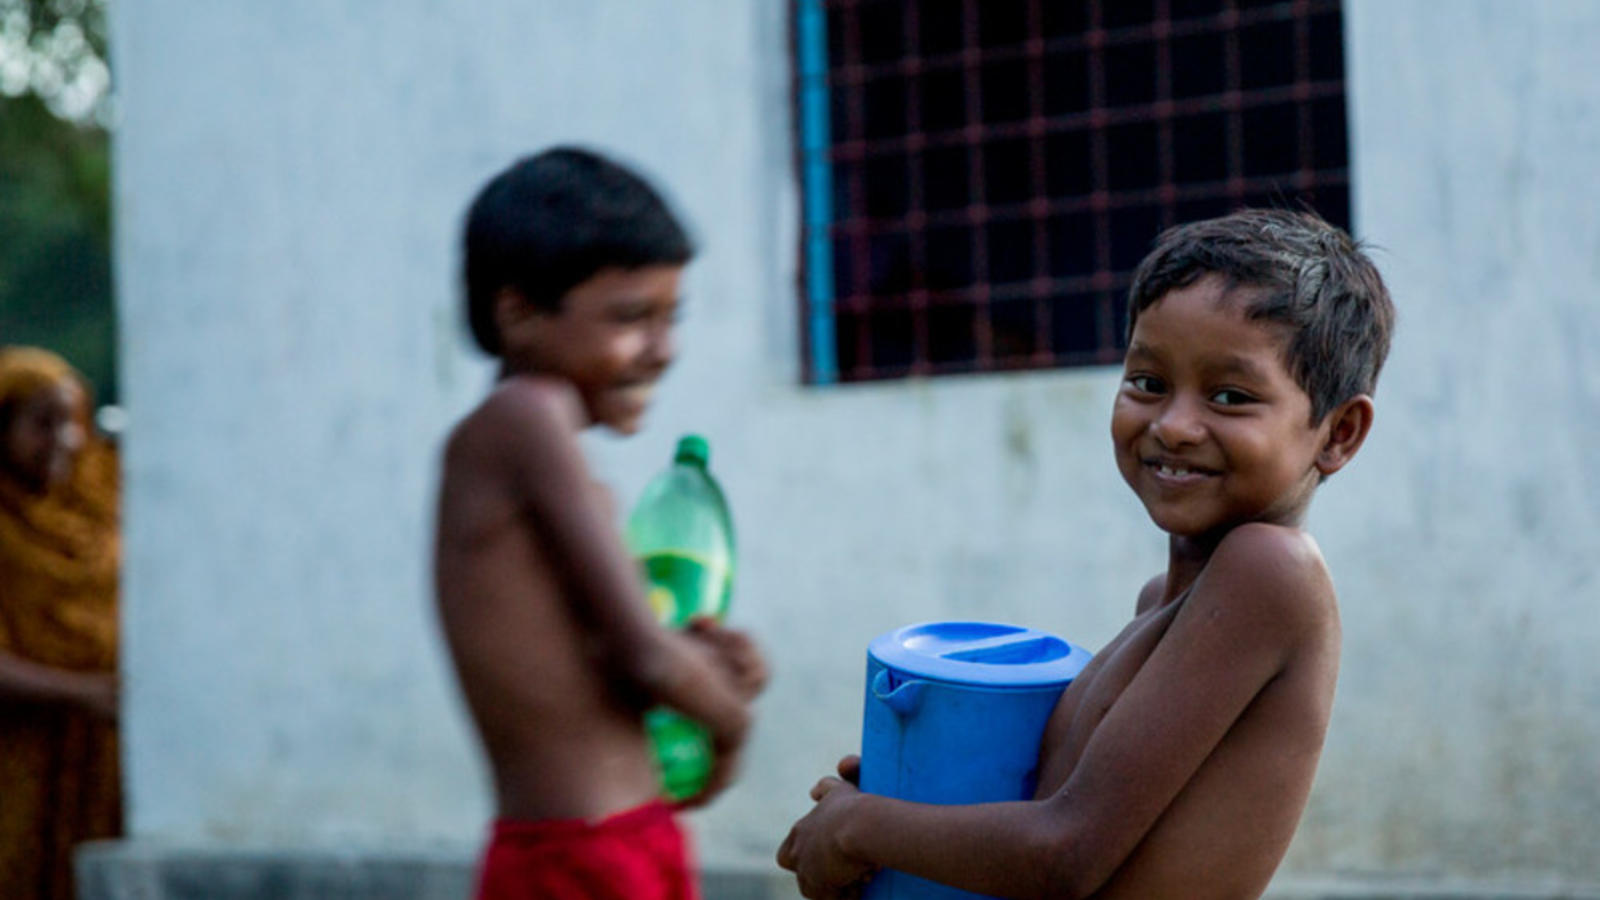 Two young boys carrying water containers and smiling.